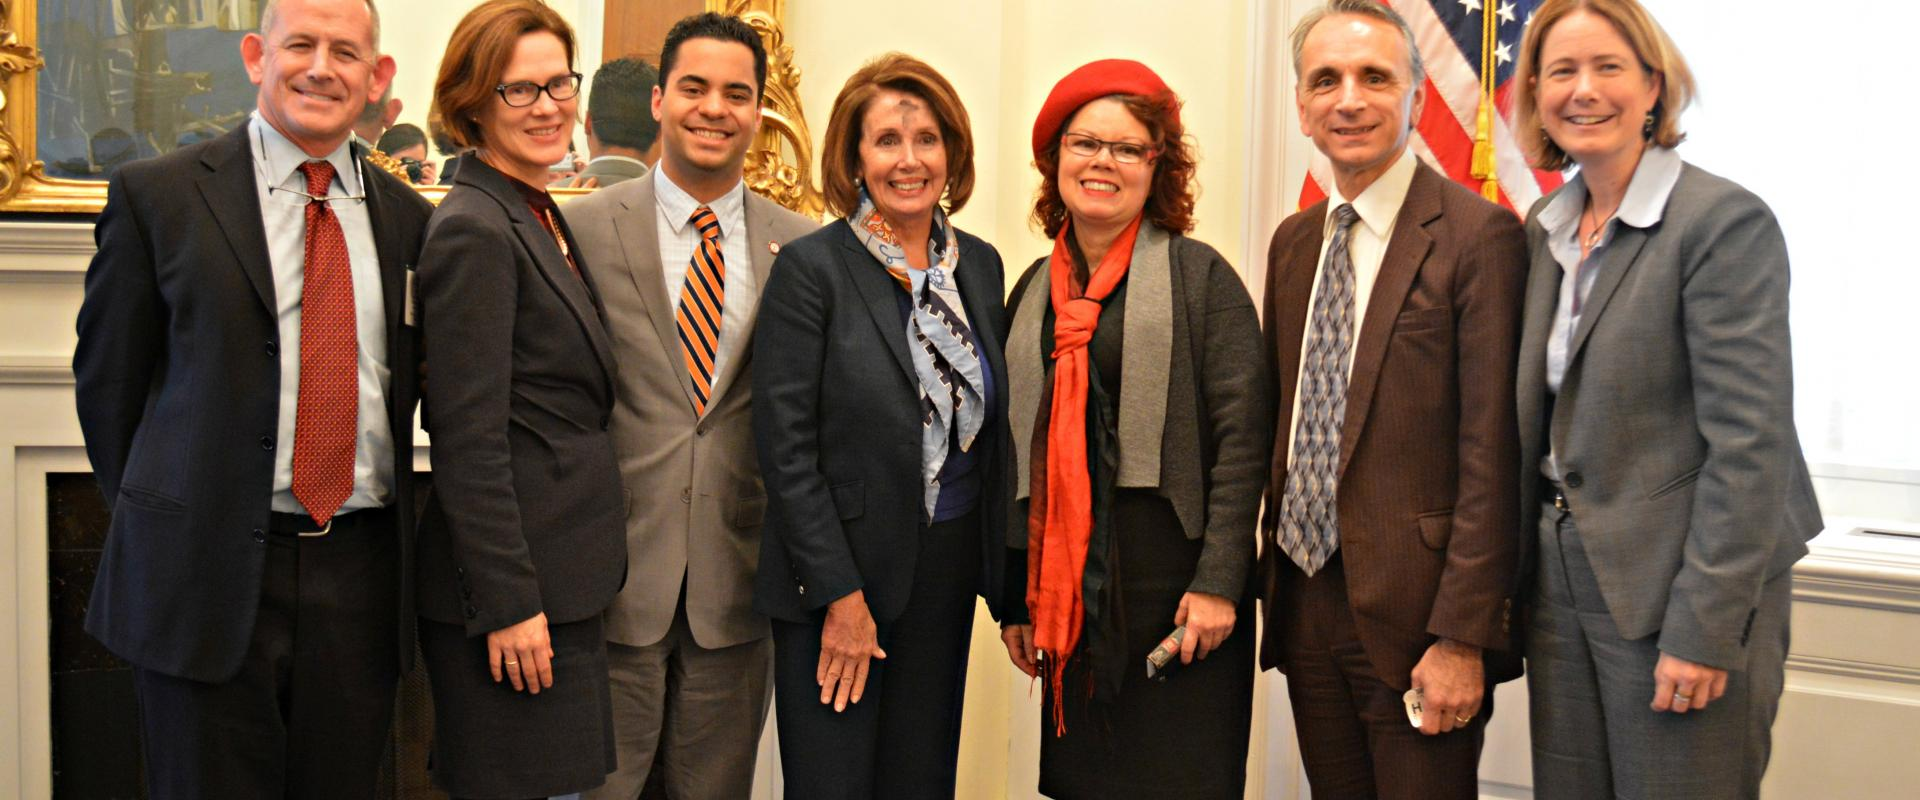 Congresswoman Pelosi meets with City College of San Francisco Interim Chancellor Susan Lamb and CCSF Trustees to discuss the indispensable role in education and job training City College provides to its students and our City.